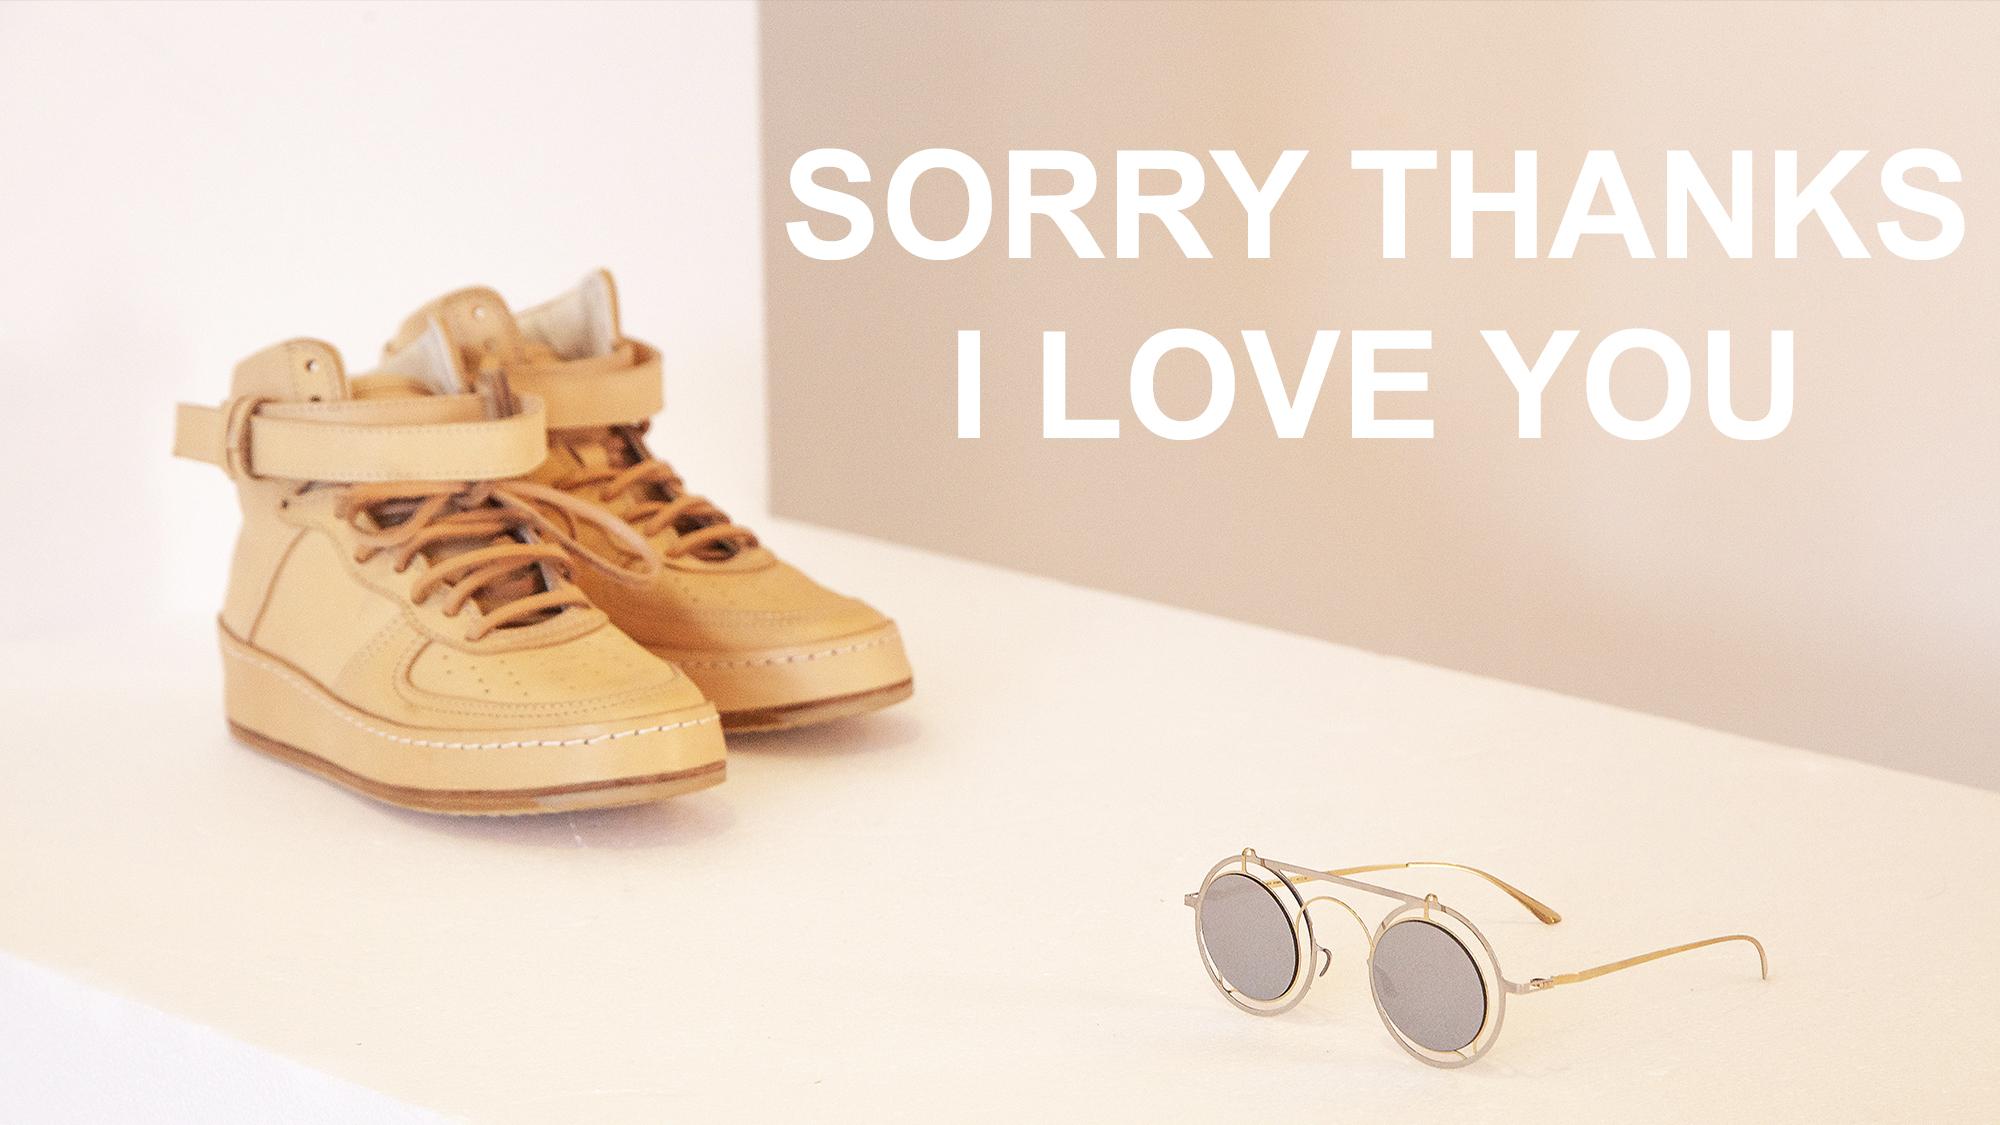 Sorry Thanks I Love You - Header.jpg